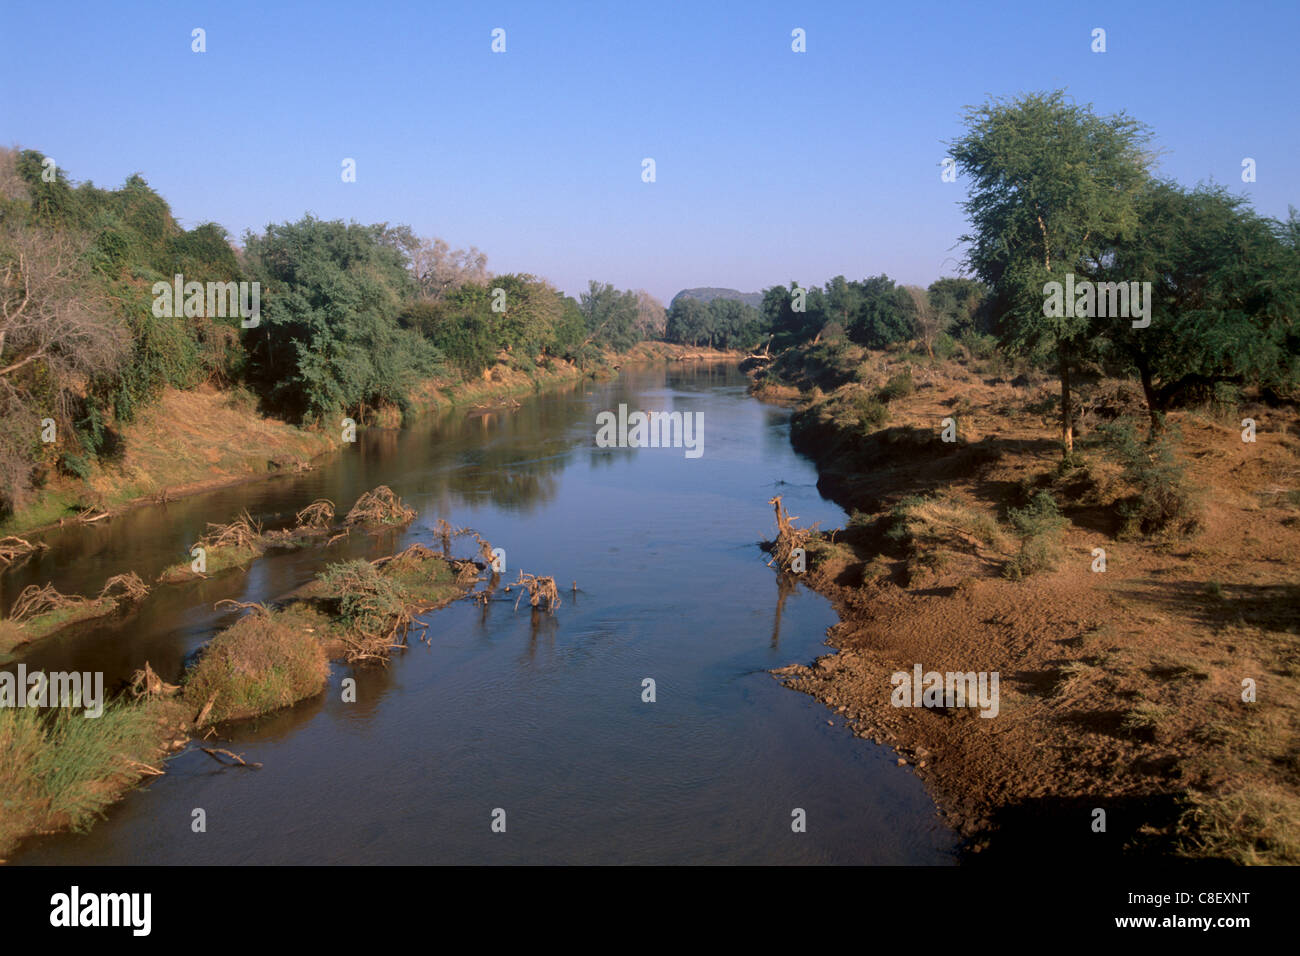 Luvuvhu river, tributary of Limpopo river, northern tip of Kruger National Park, South Africa - Stock Image